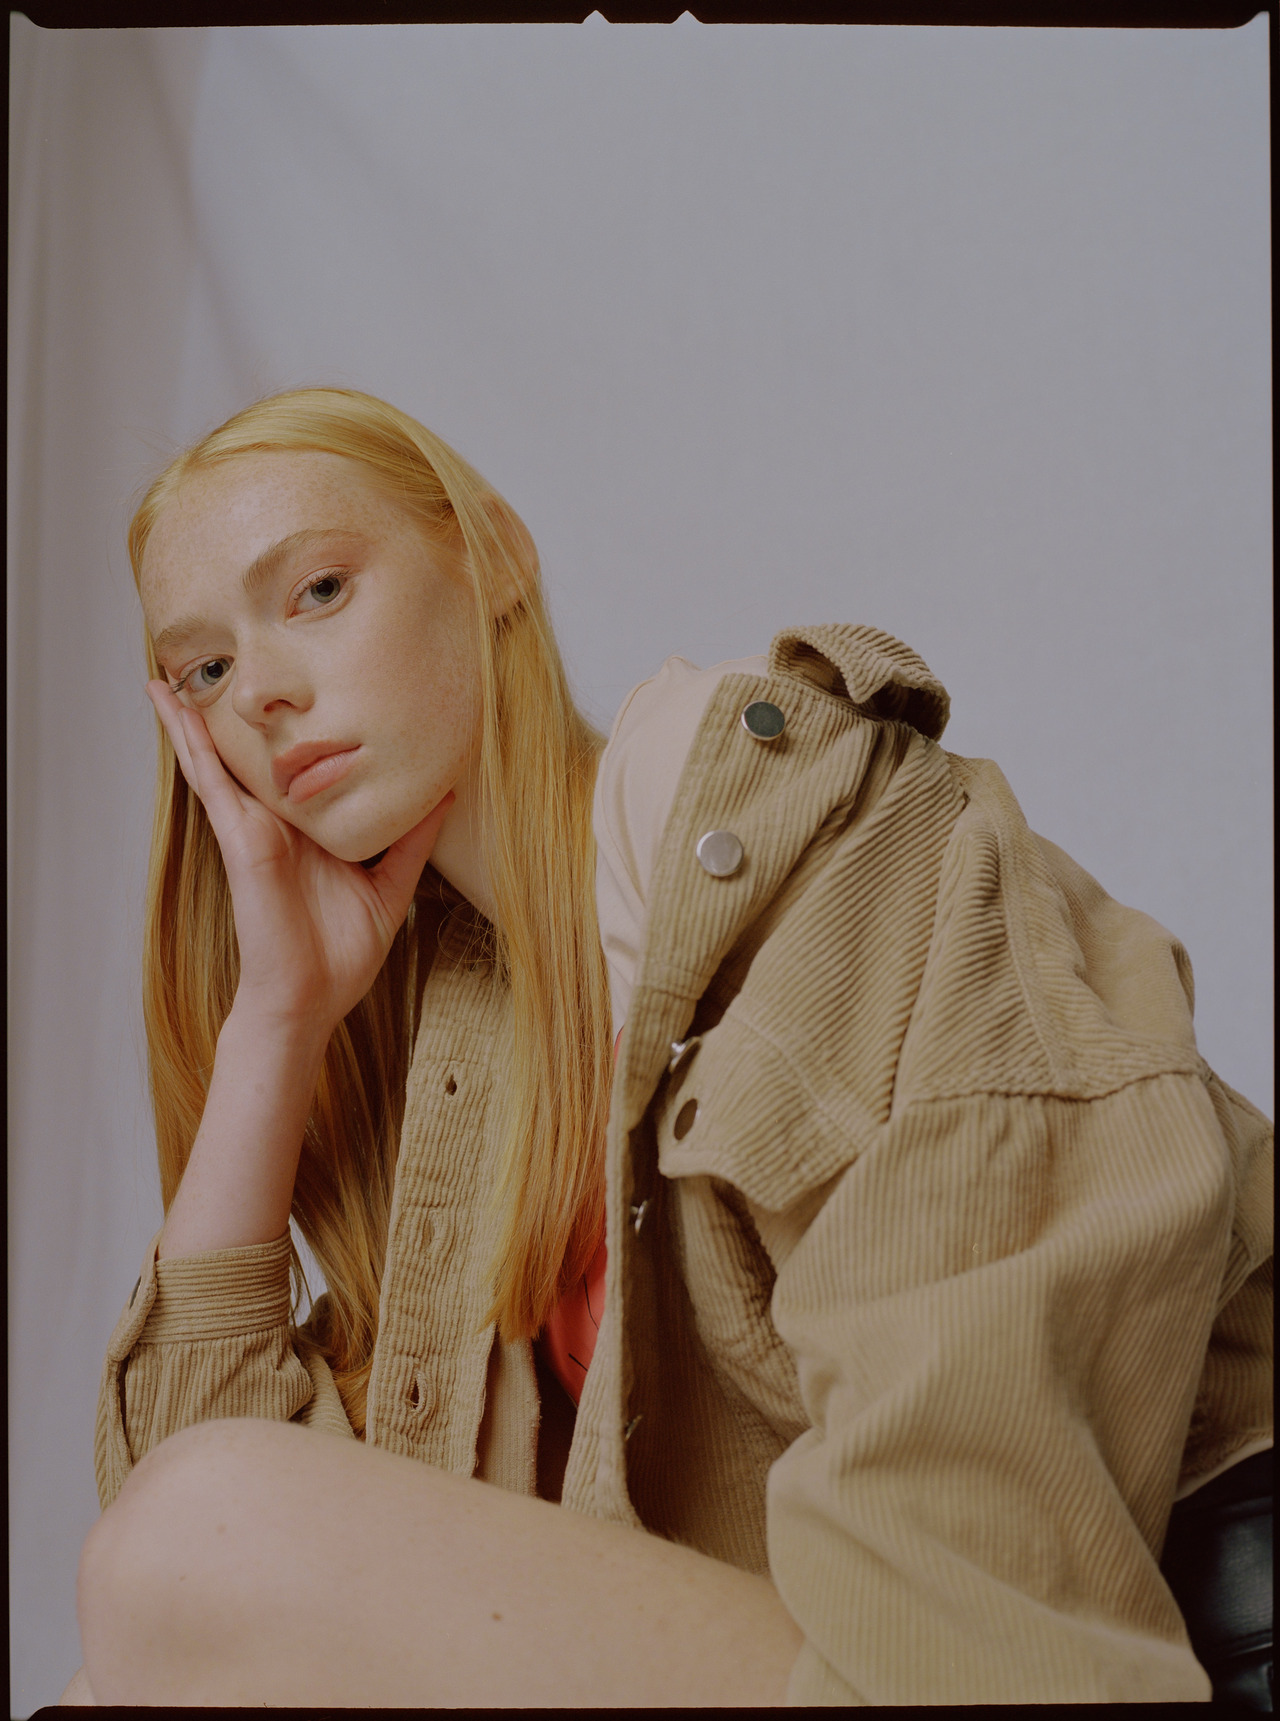 Suzanne for Sickymag